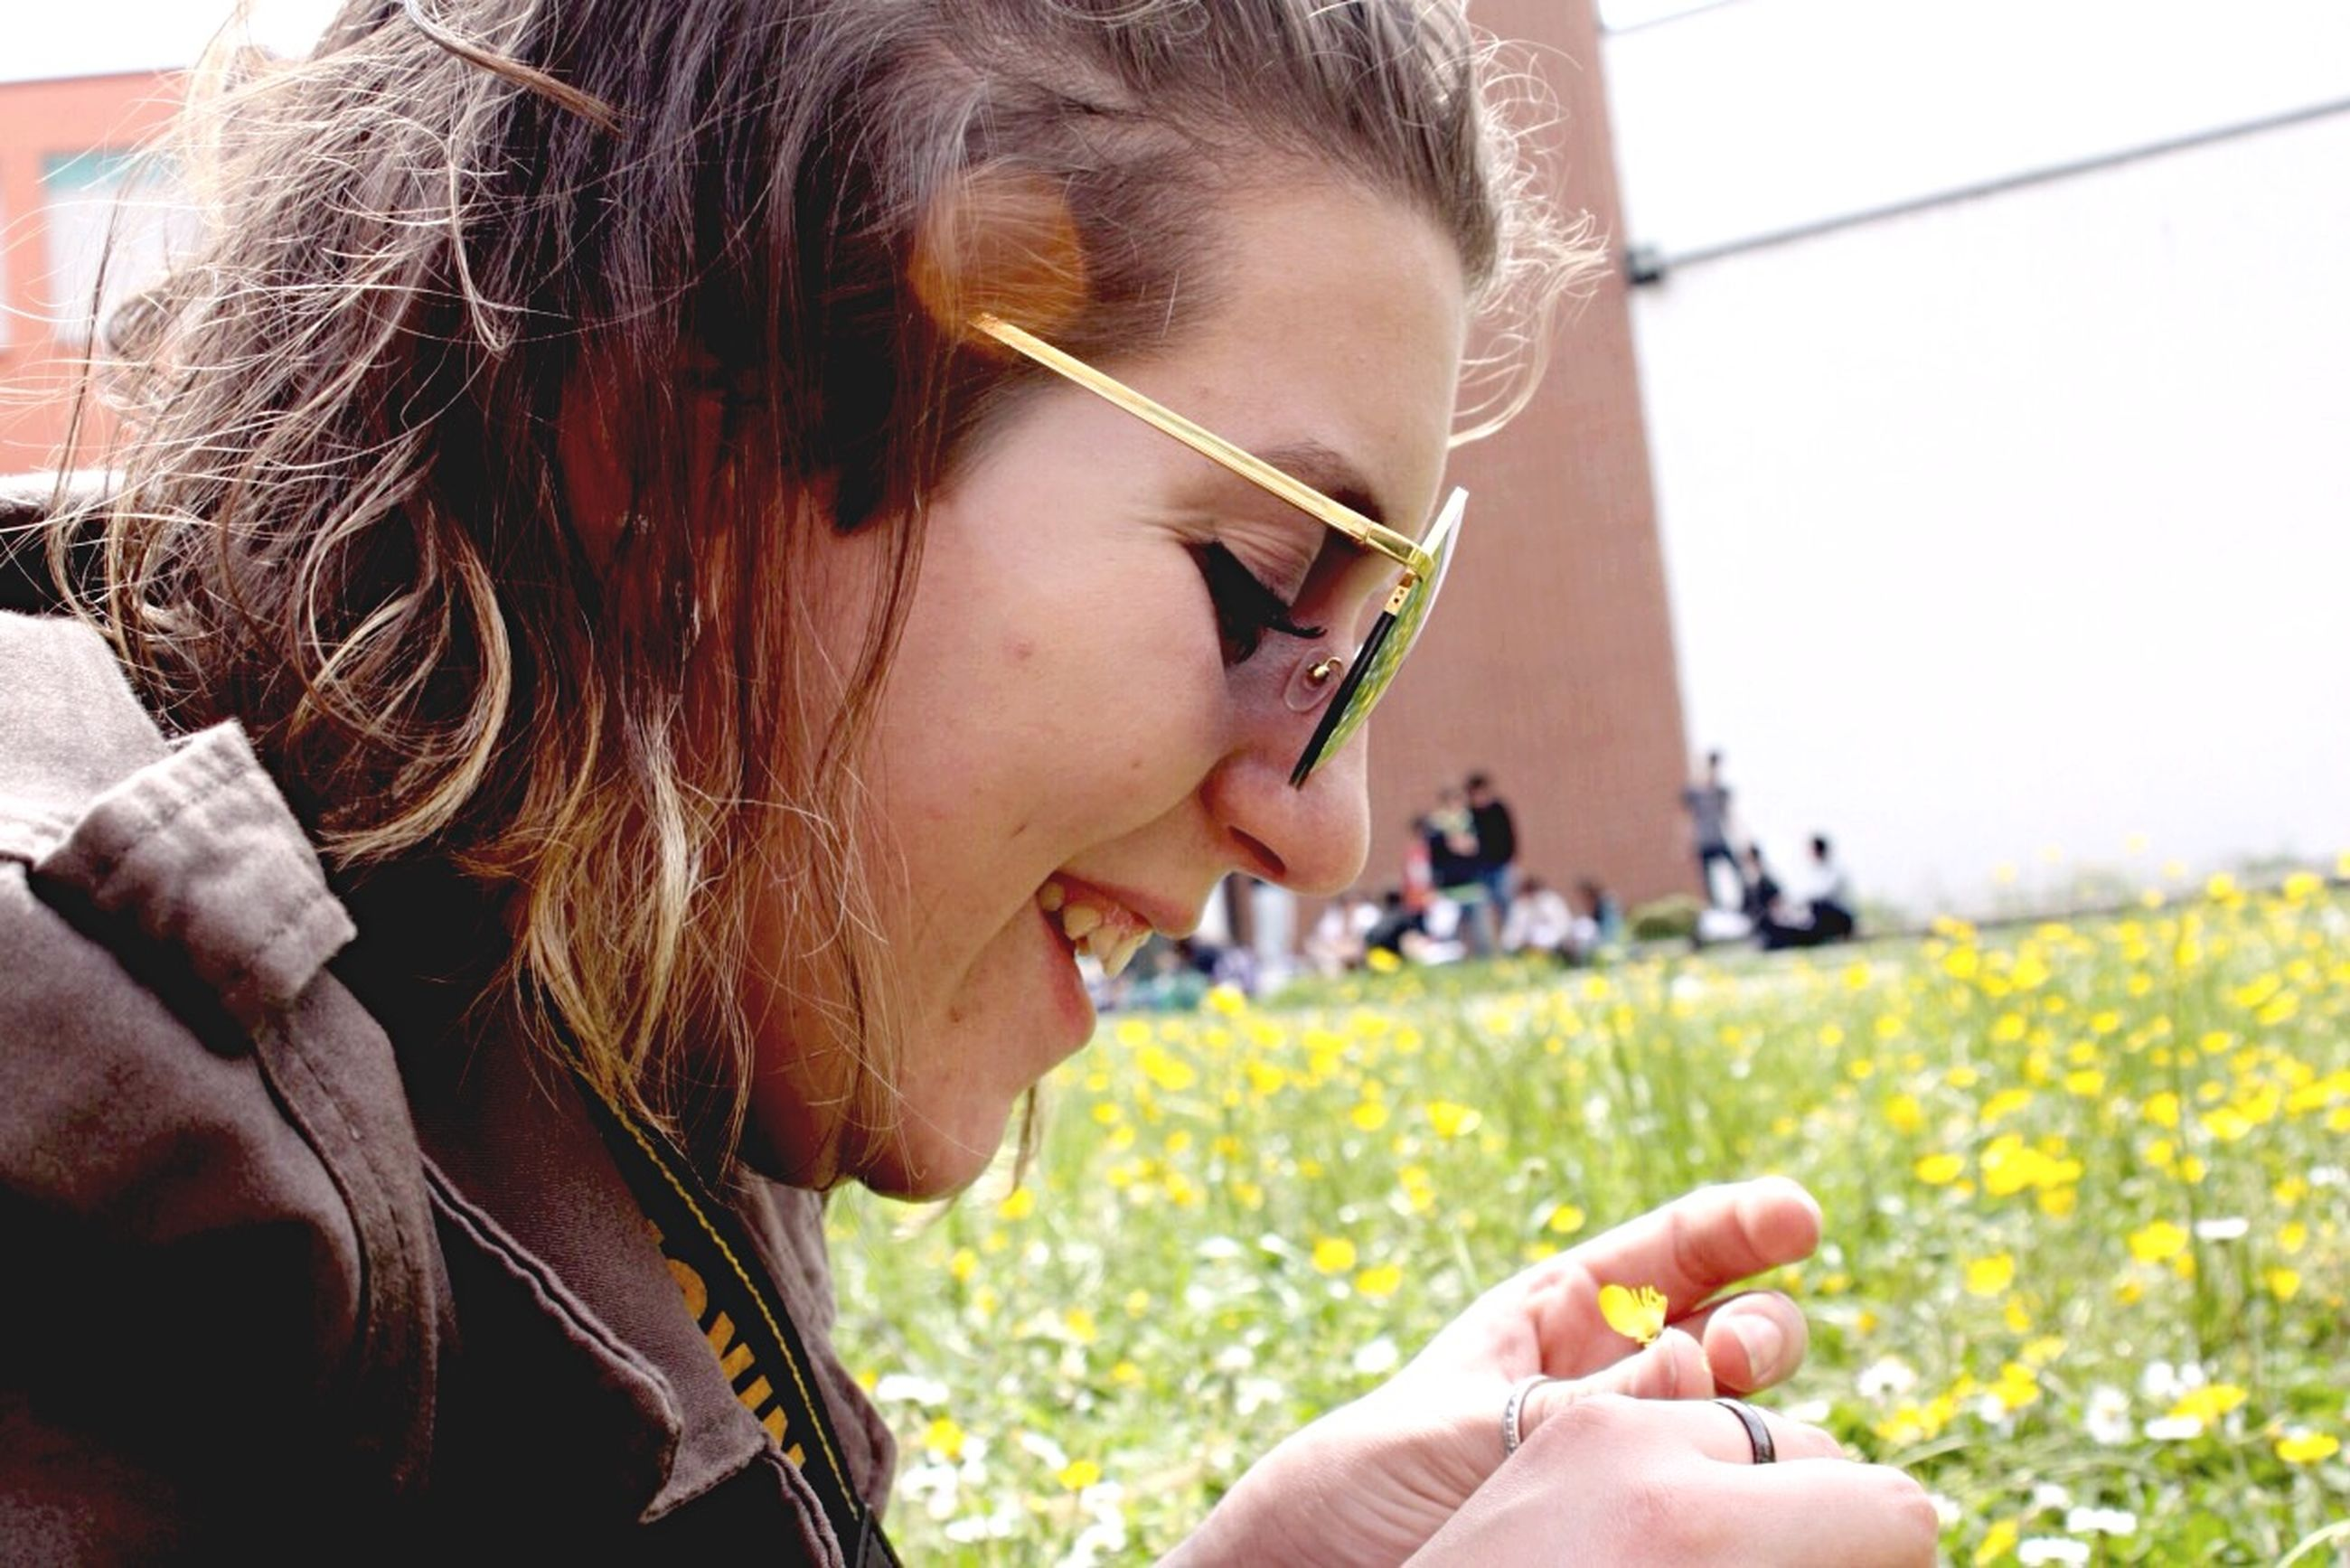 person, holding, lifestyles, focus on foreground, field, part of, leisure activity, close-up, flower, grass, cropped, headshot, day, sunlight, outdoors